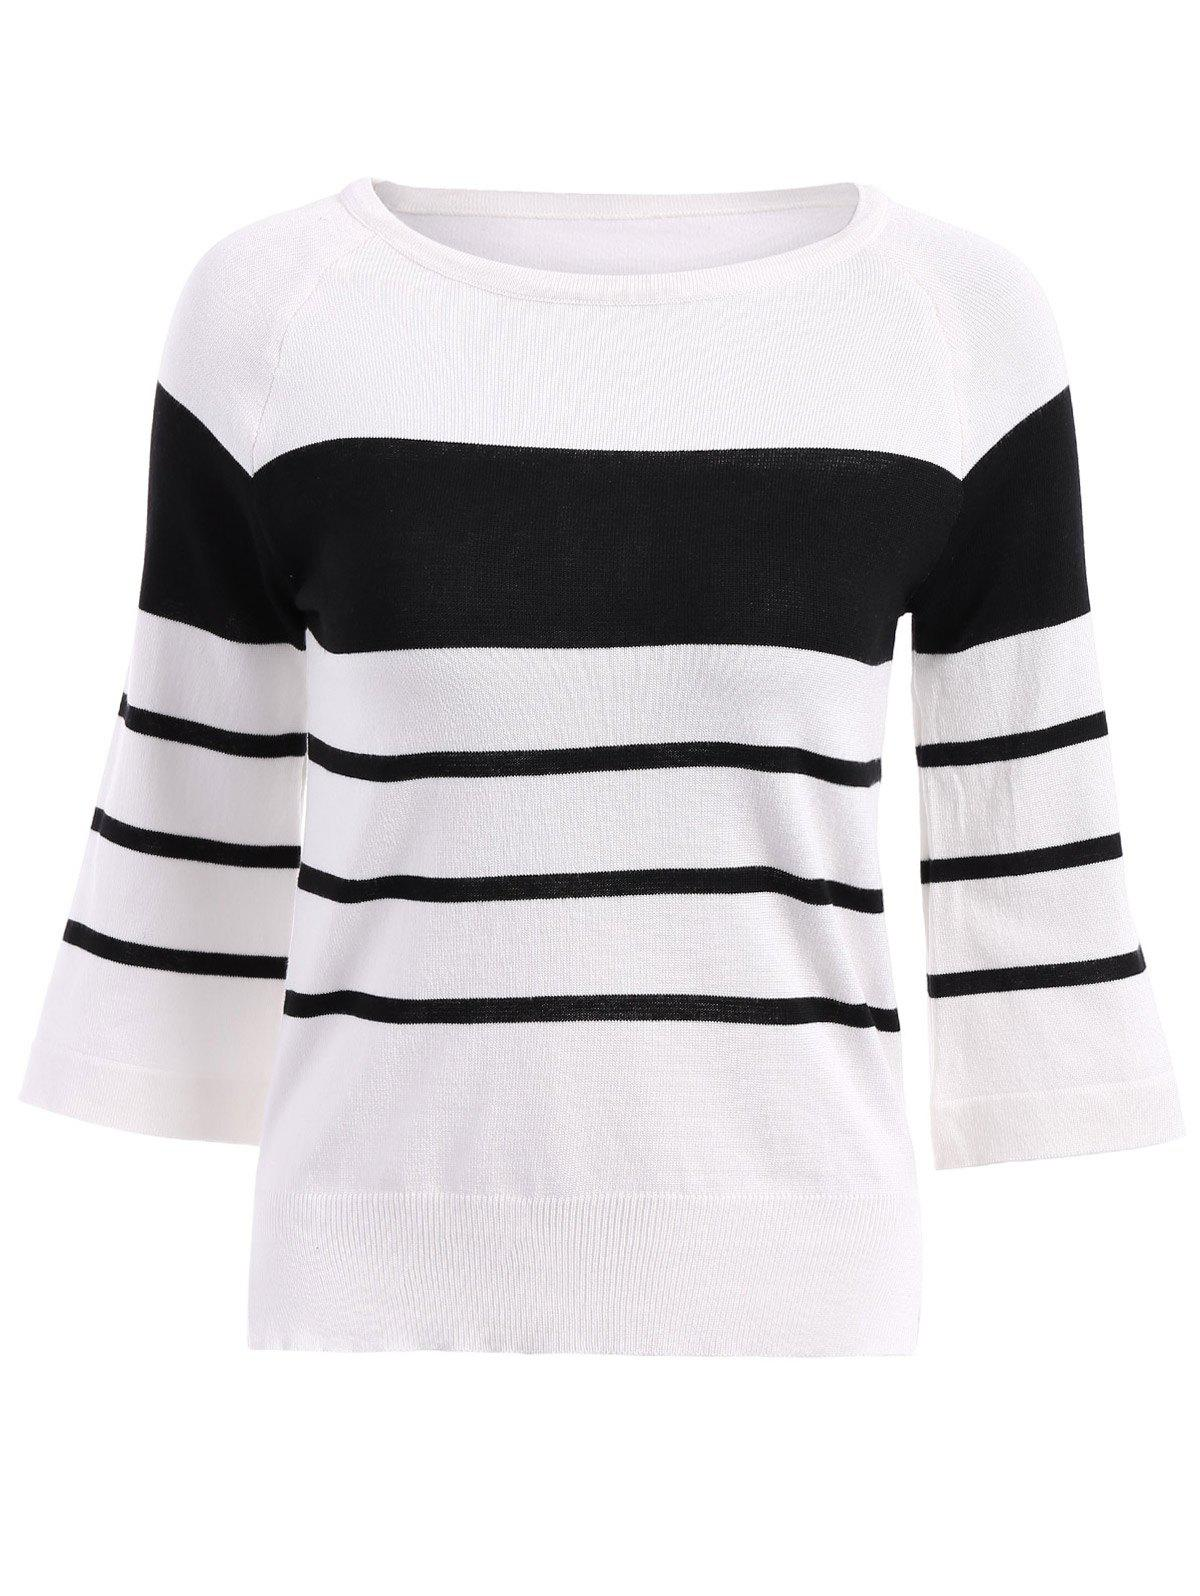 Brief Women's Round Neck Stripe 3/4 Sleeve Blouse - WHITE ONE SIZE(FIT SIZE XS TO M)